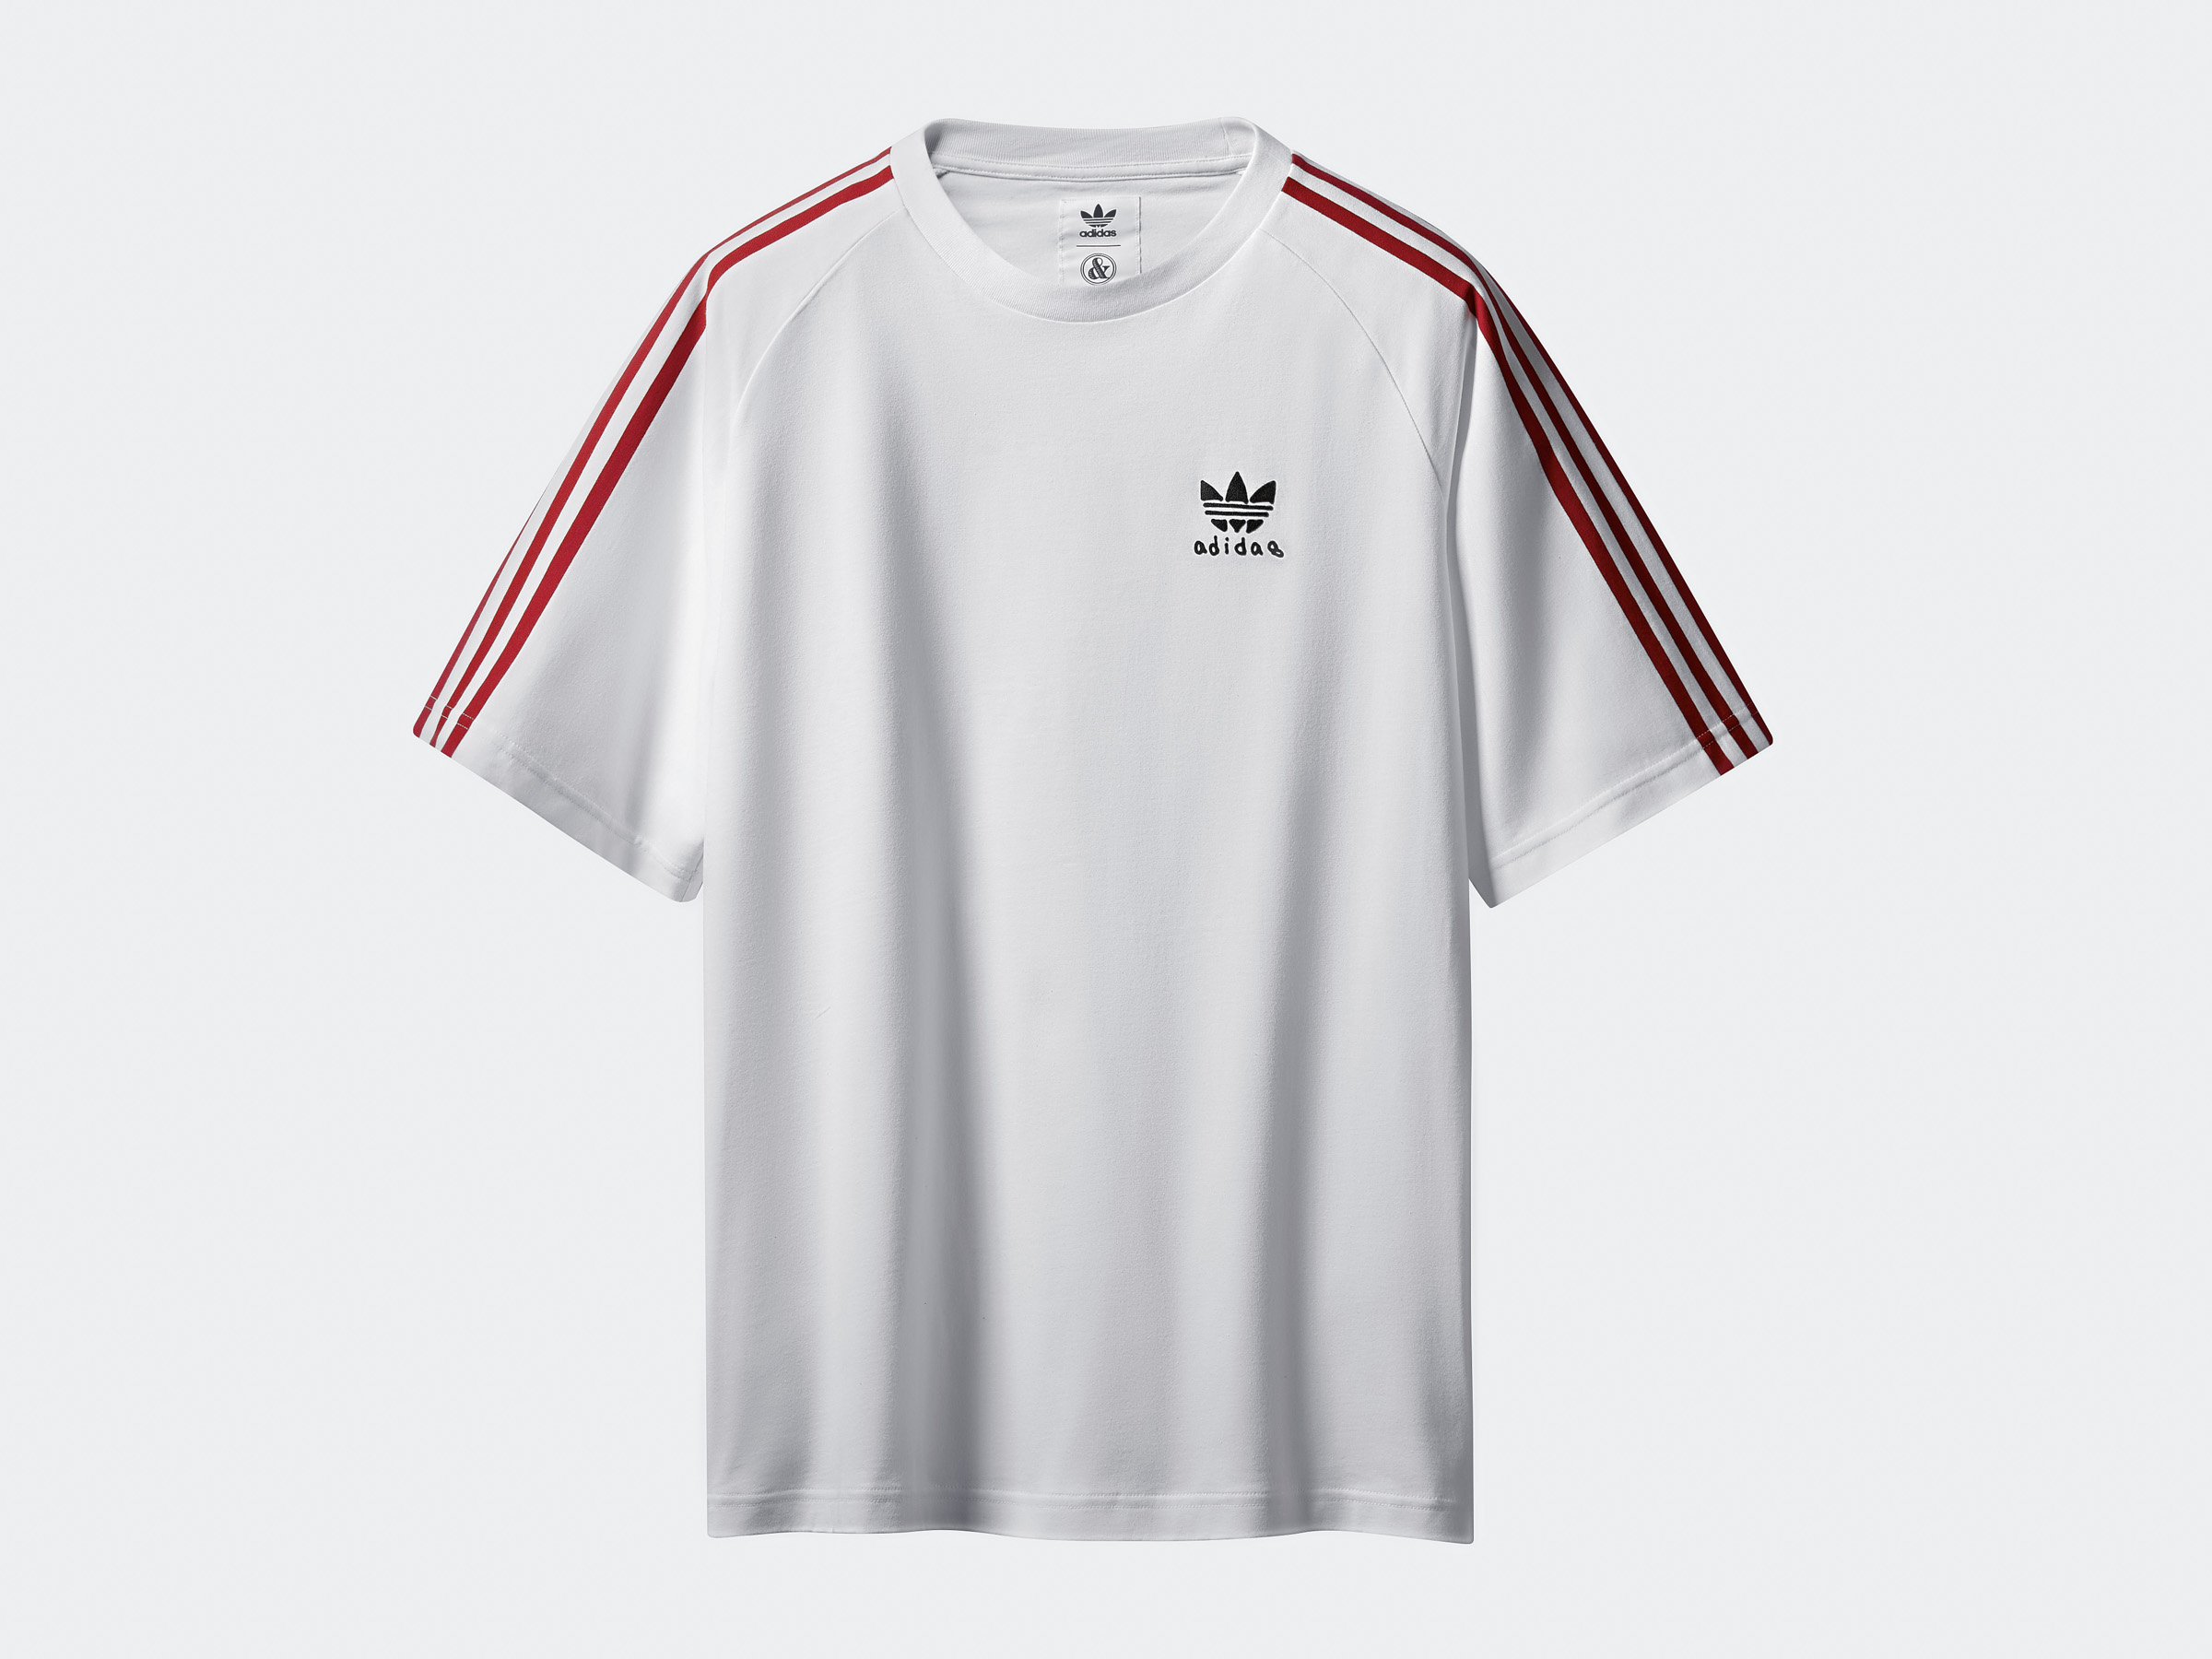 united-arrows-and-sons-adidas-2018-collaboration-release-20180825